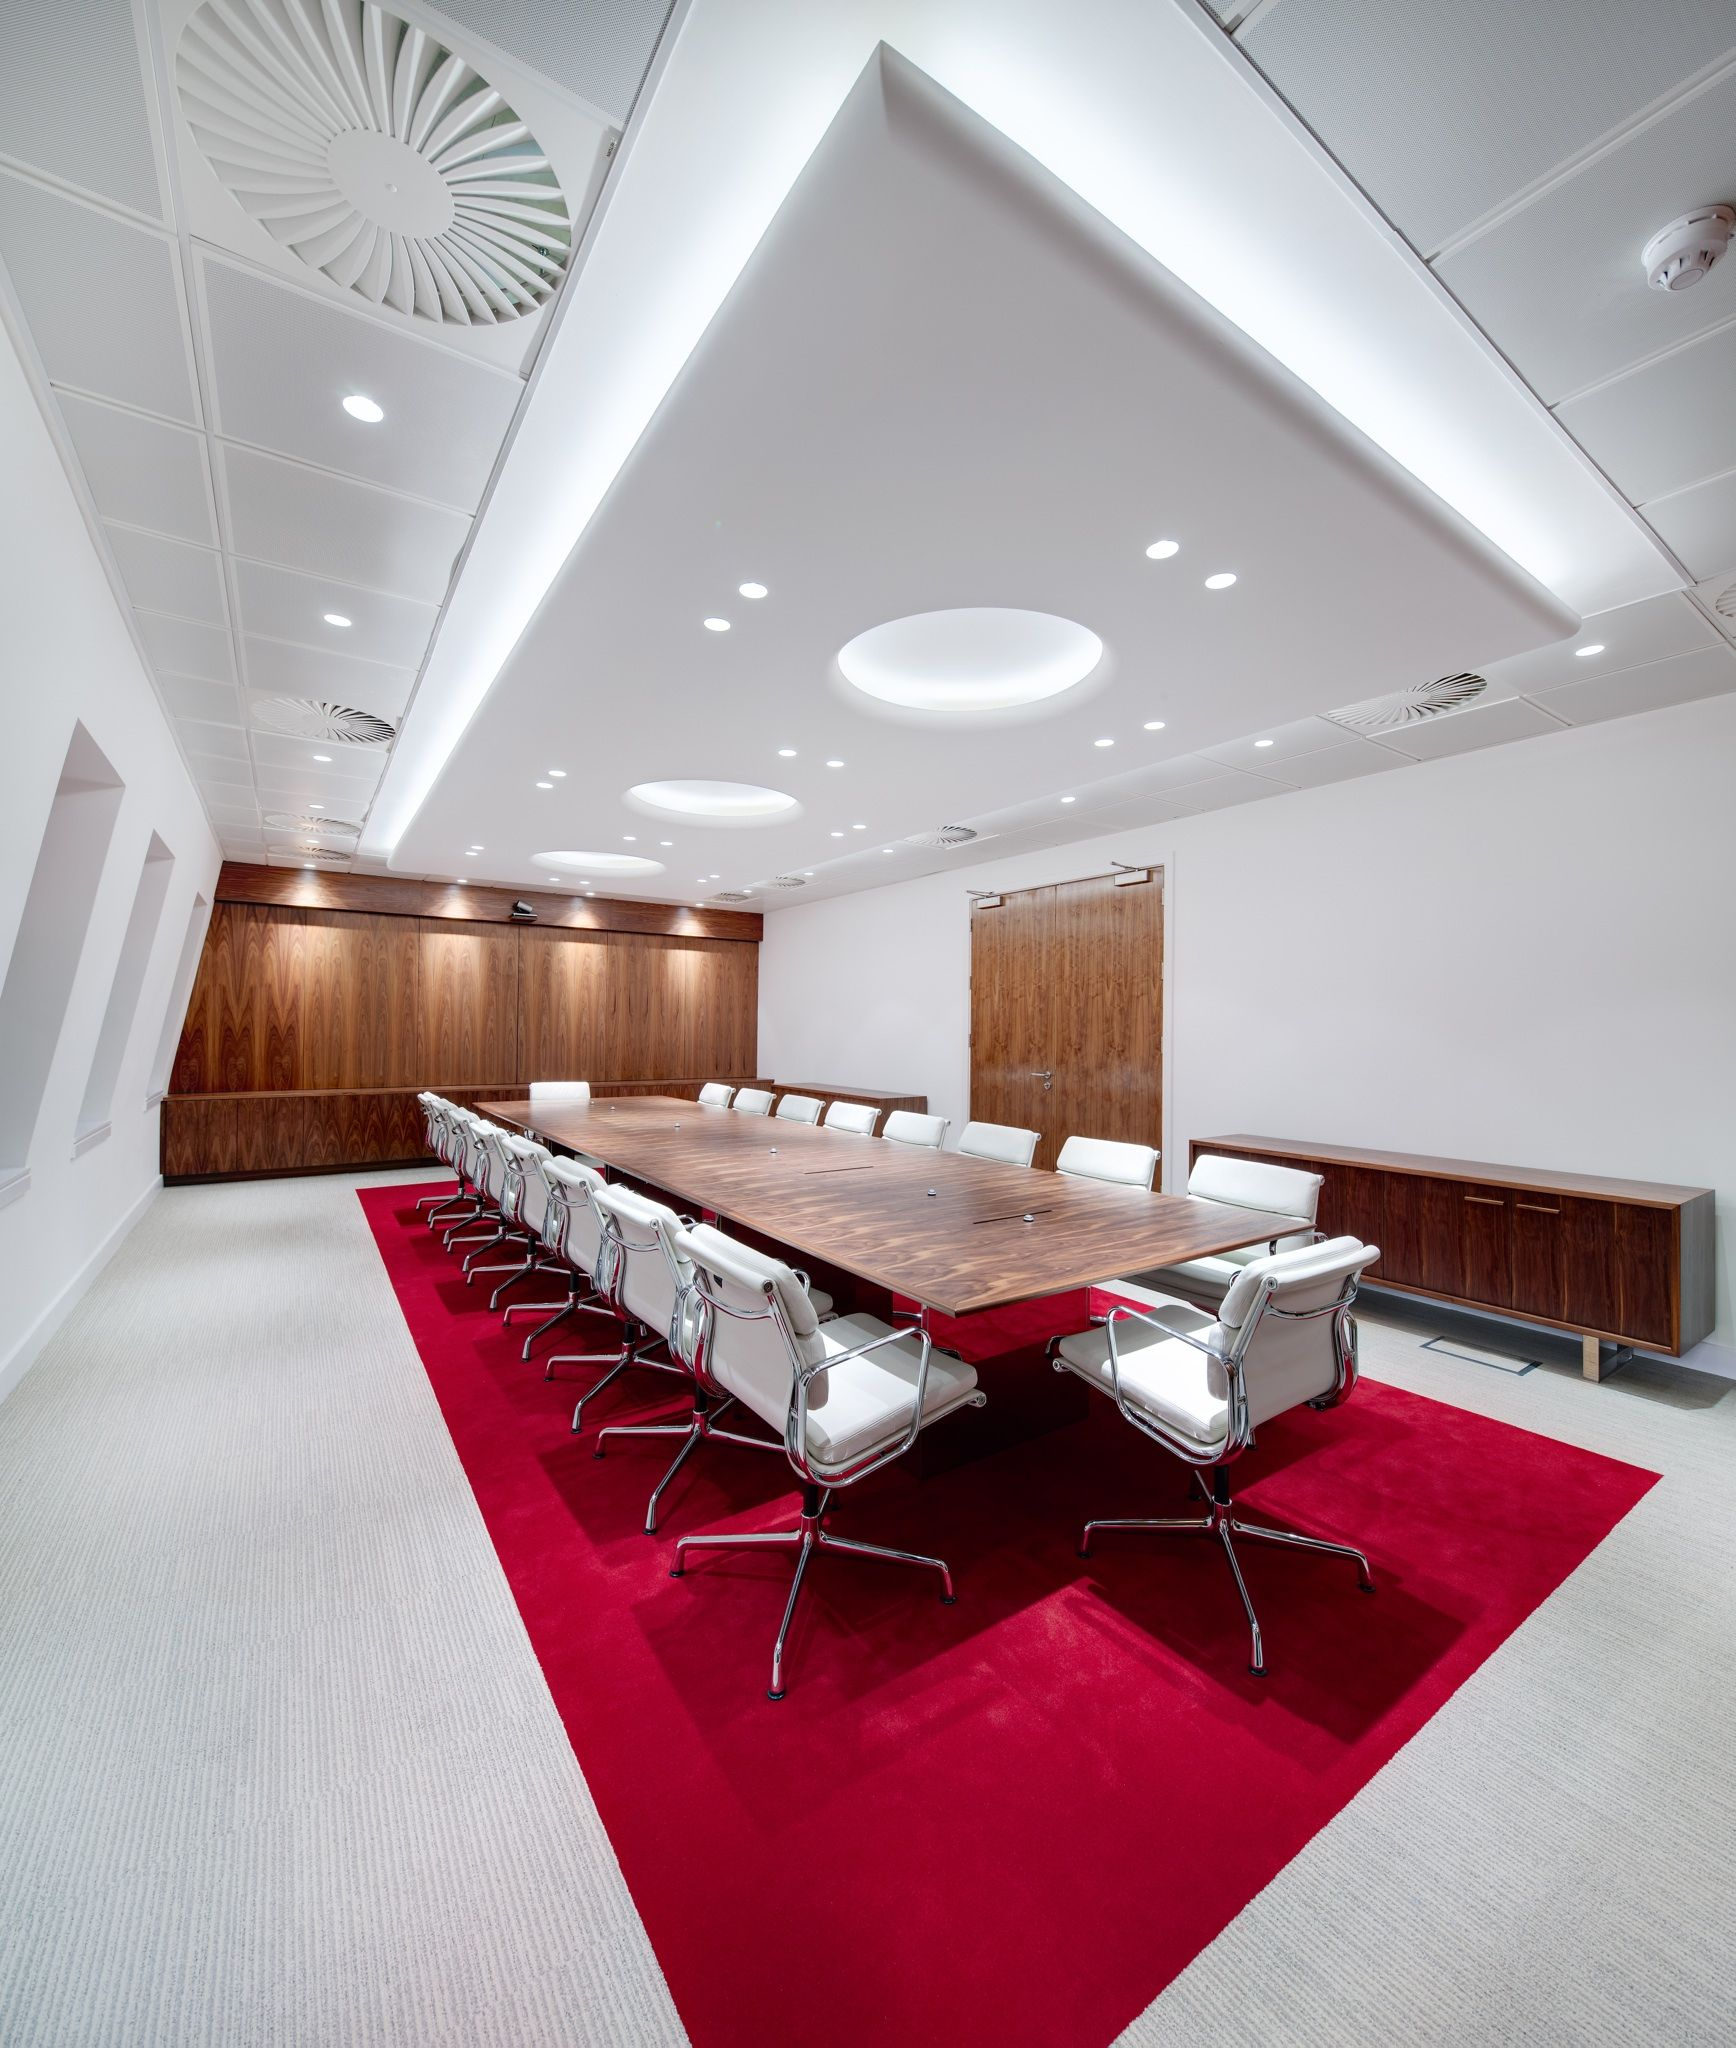 Office Fit Out For Dana Petroleum In Aberdeen By Www Jamstudio Uk Com Meeting Room Design Modern Office Design Conference Room Design